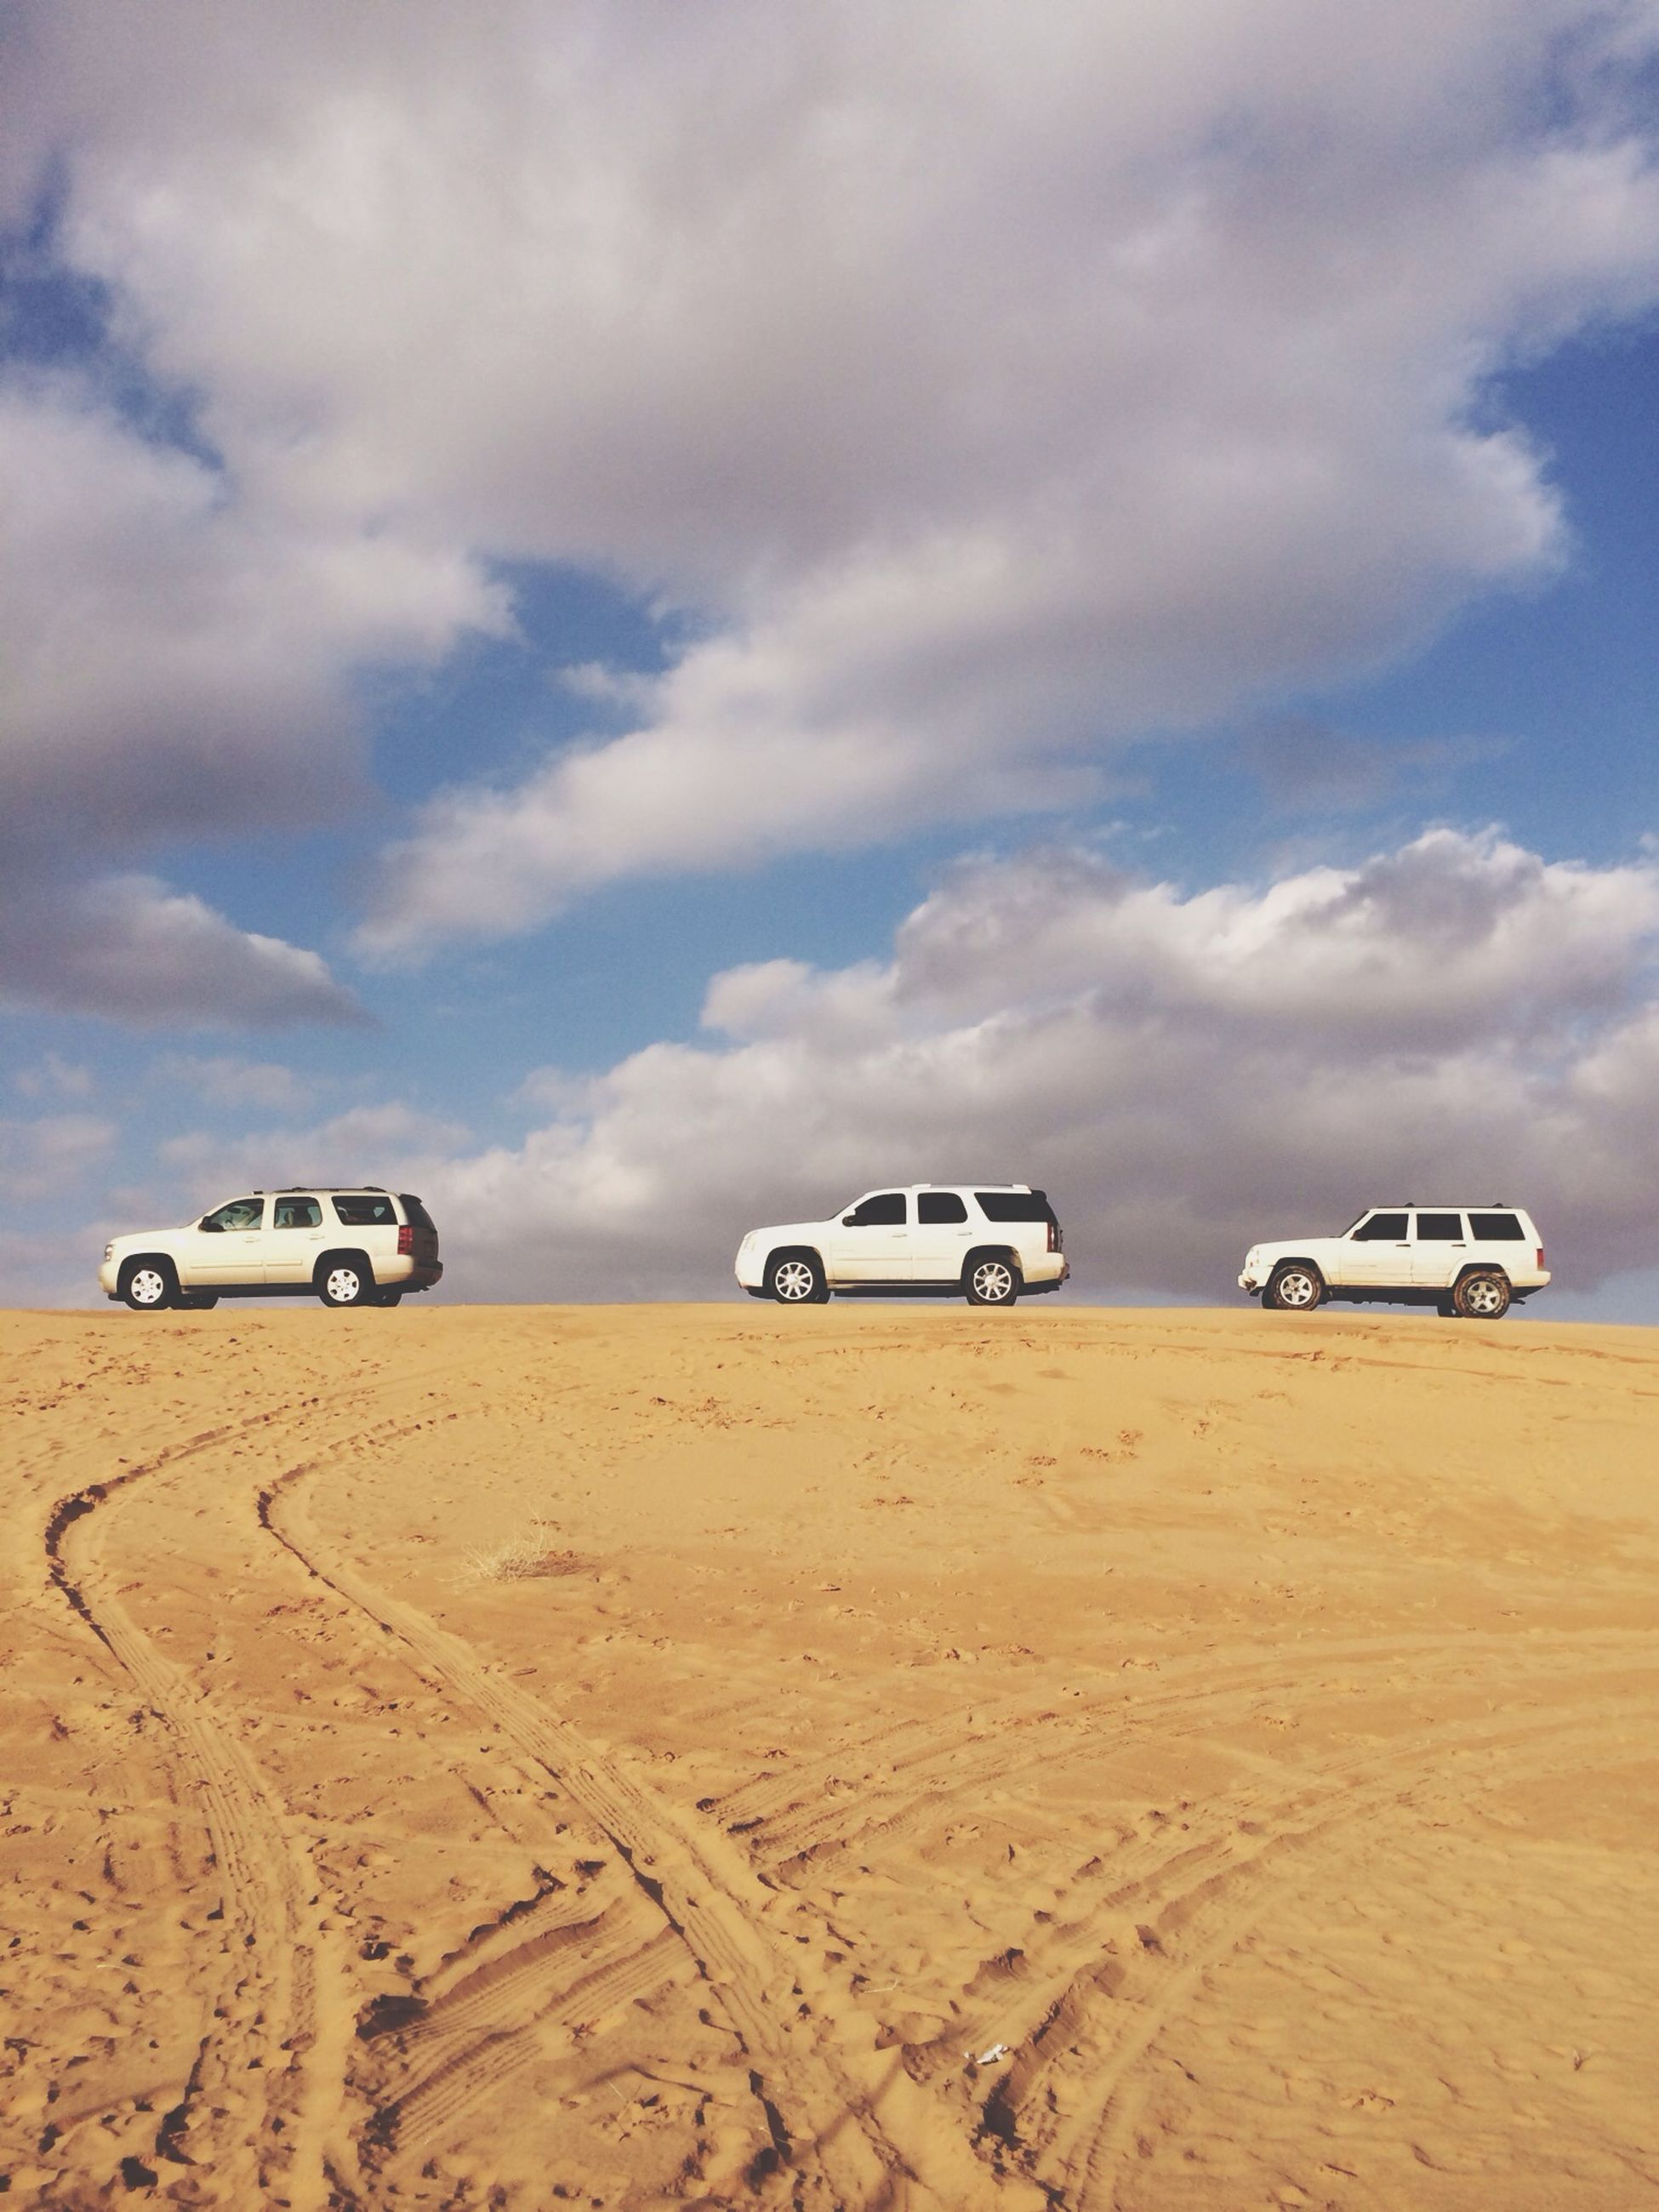 transportation, land vehicle, sand, mode of transport, car, sky, beach, desert, travel, cloud - sky, landscape, on the move, day, arid climate, outdoors, stationary, nature, sunlight, cloud, tranquility